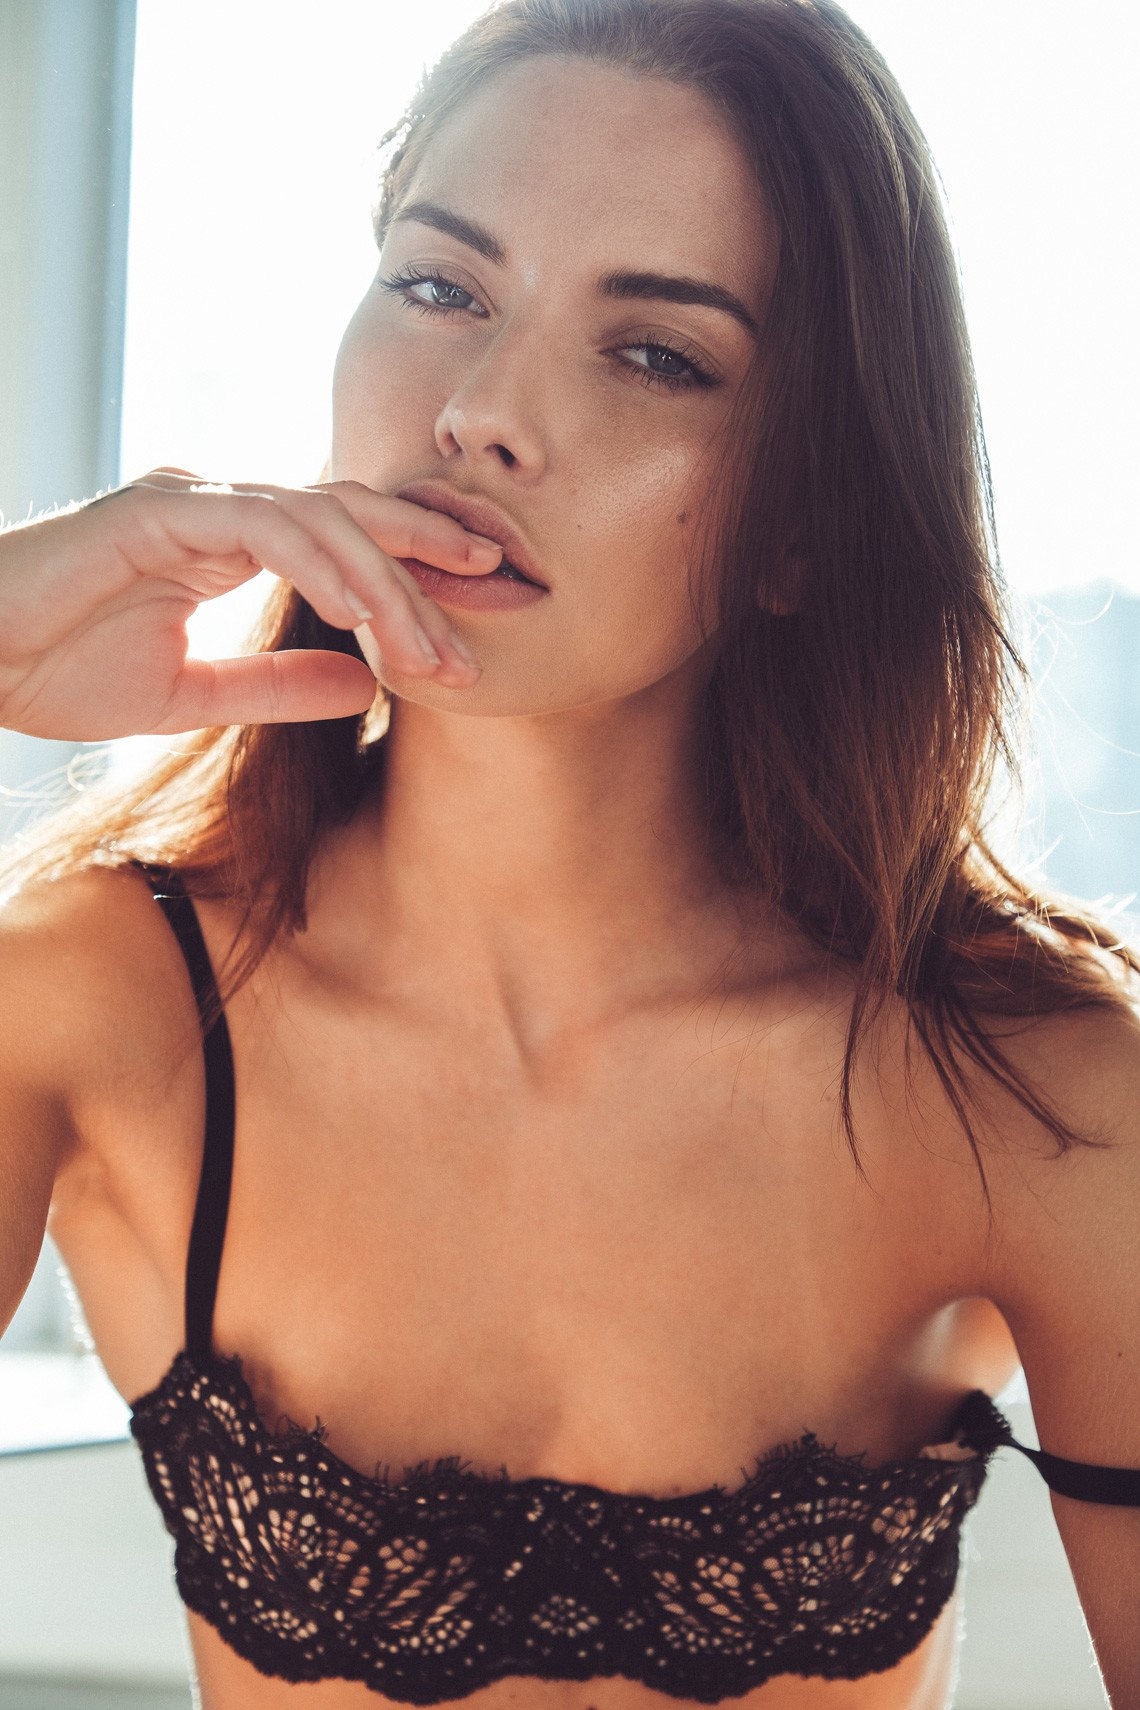 Amelie Nude amelie lamarche nude photos and videos   #thefappening